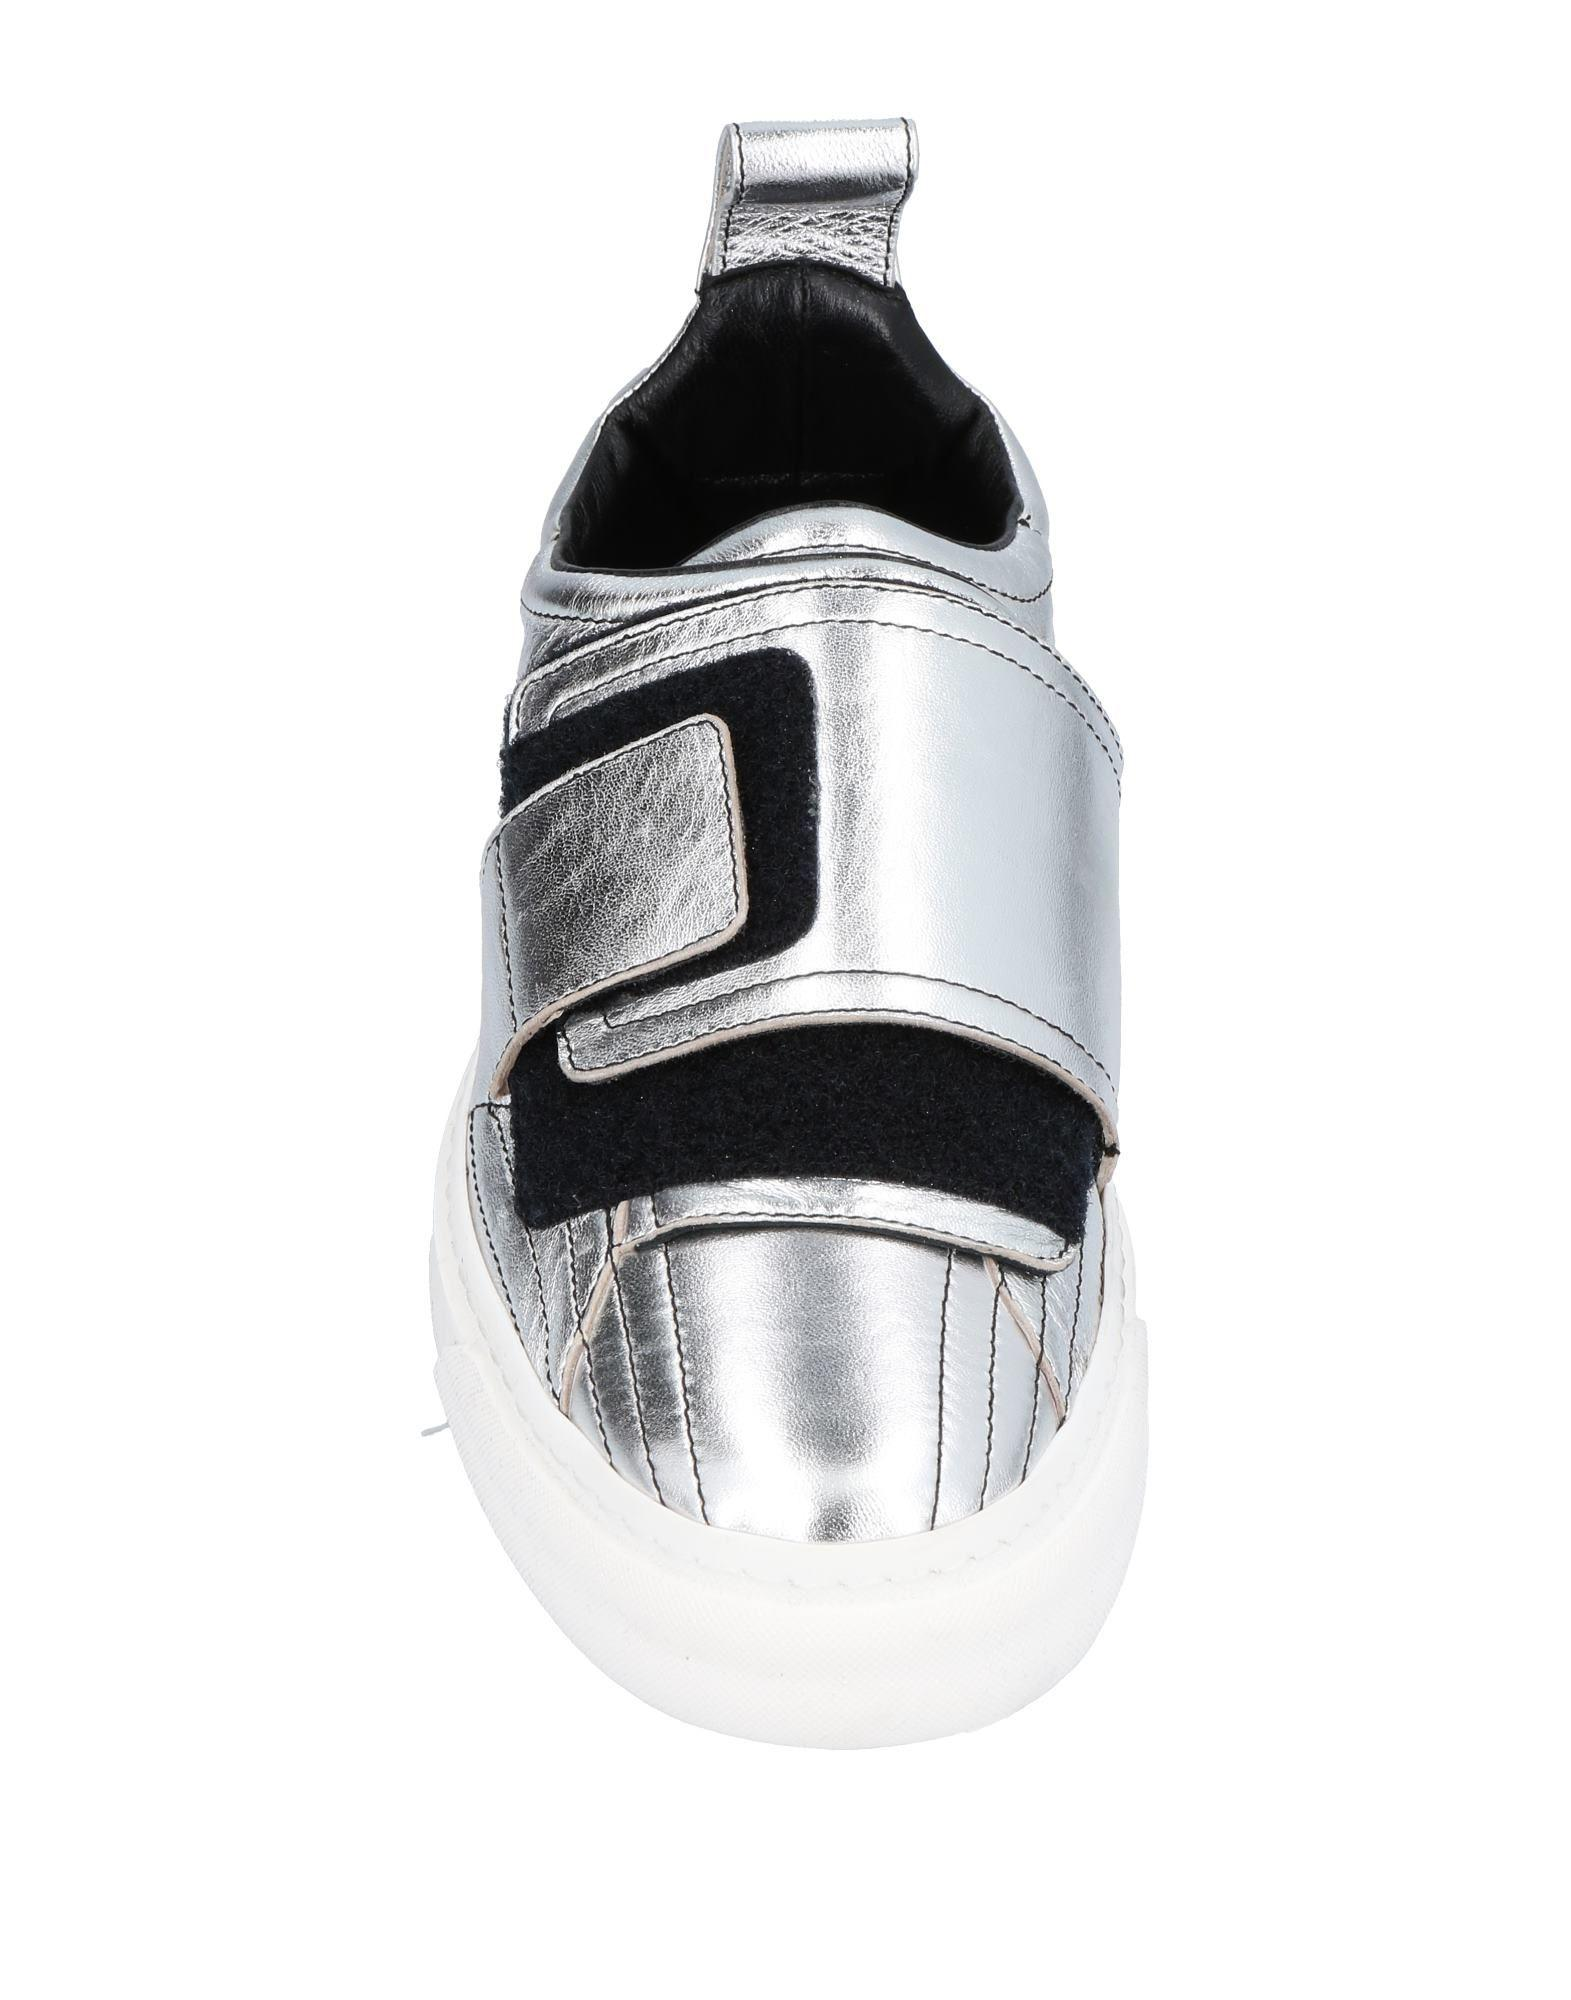 Paco Rabanne Leather Low-tops & Sneakers in Silver (Metallic)